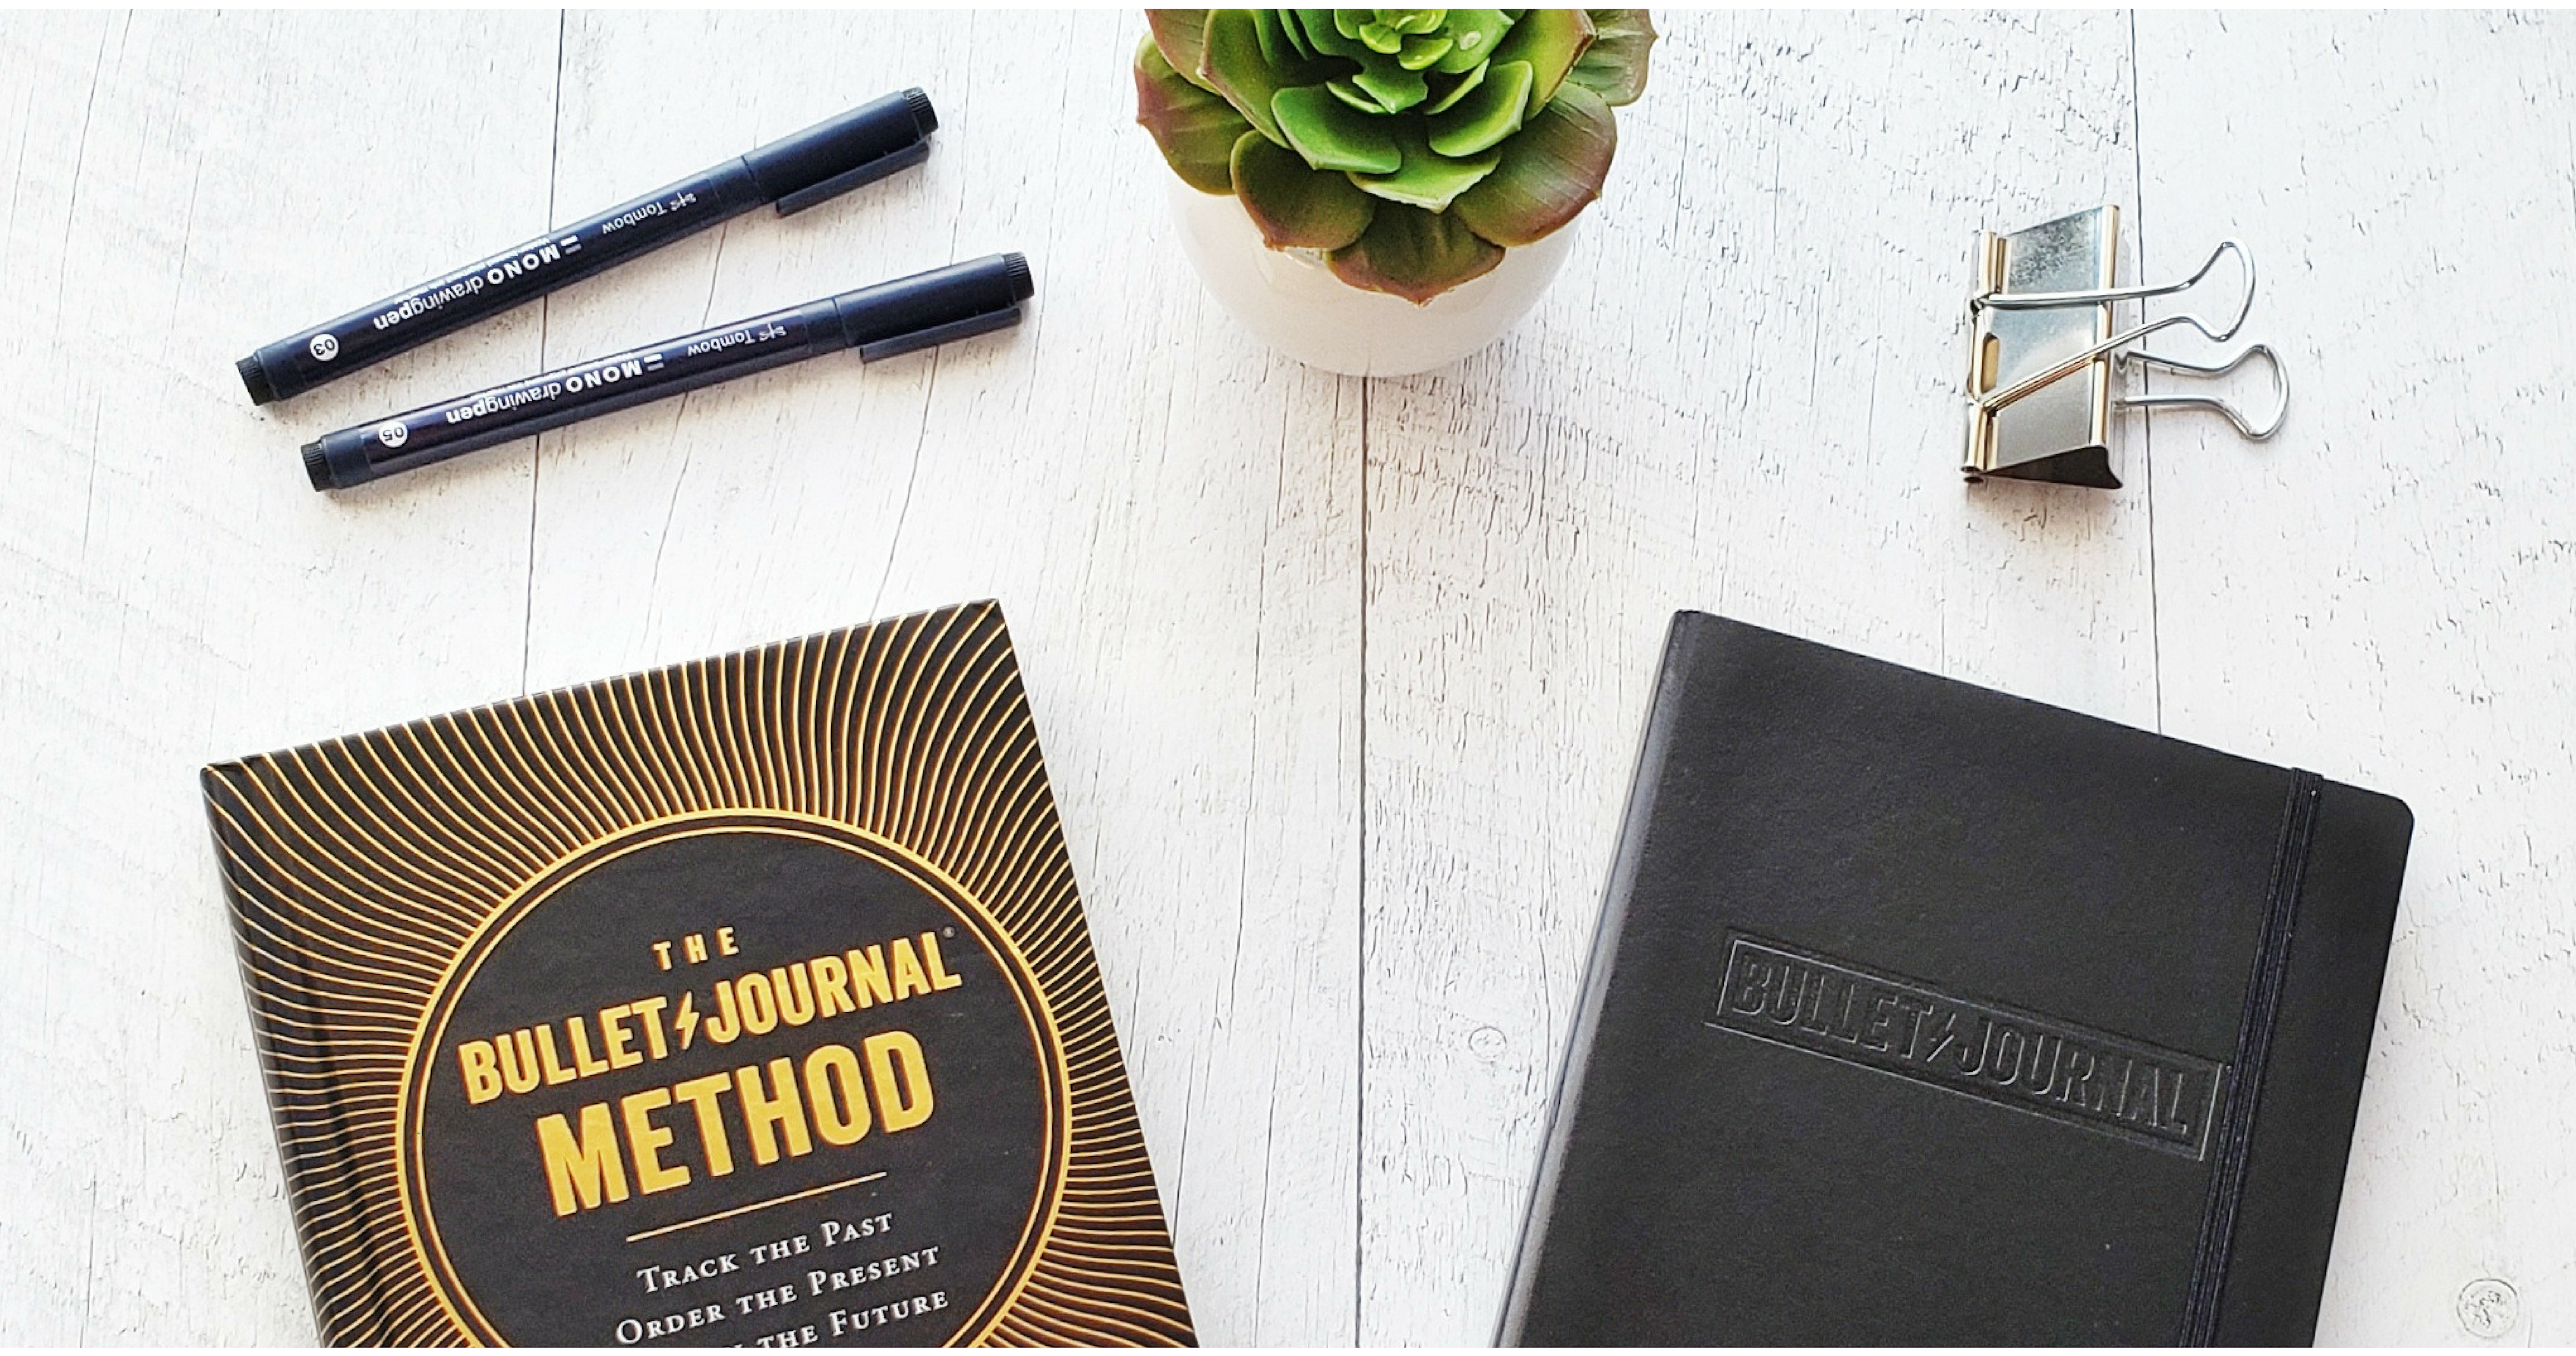 bullet journal method review unboxing